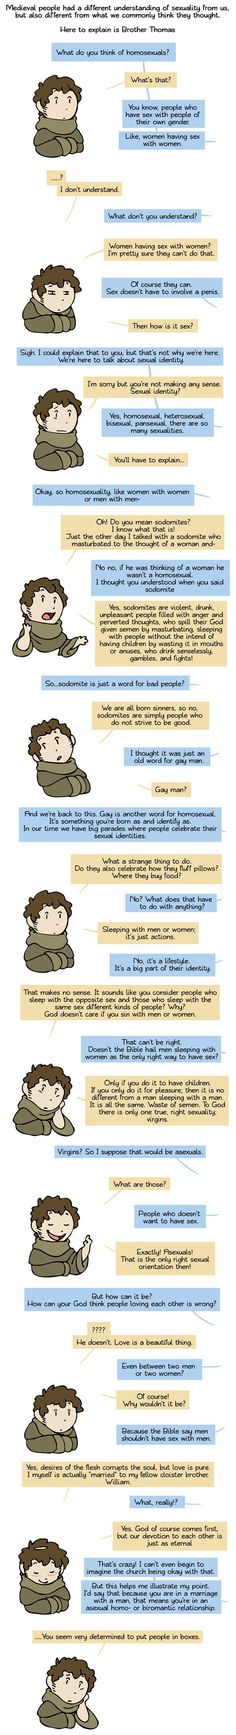 The past is rarely as we imagine it (By Humon Comics)